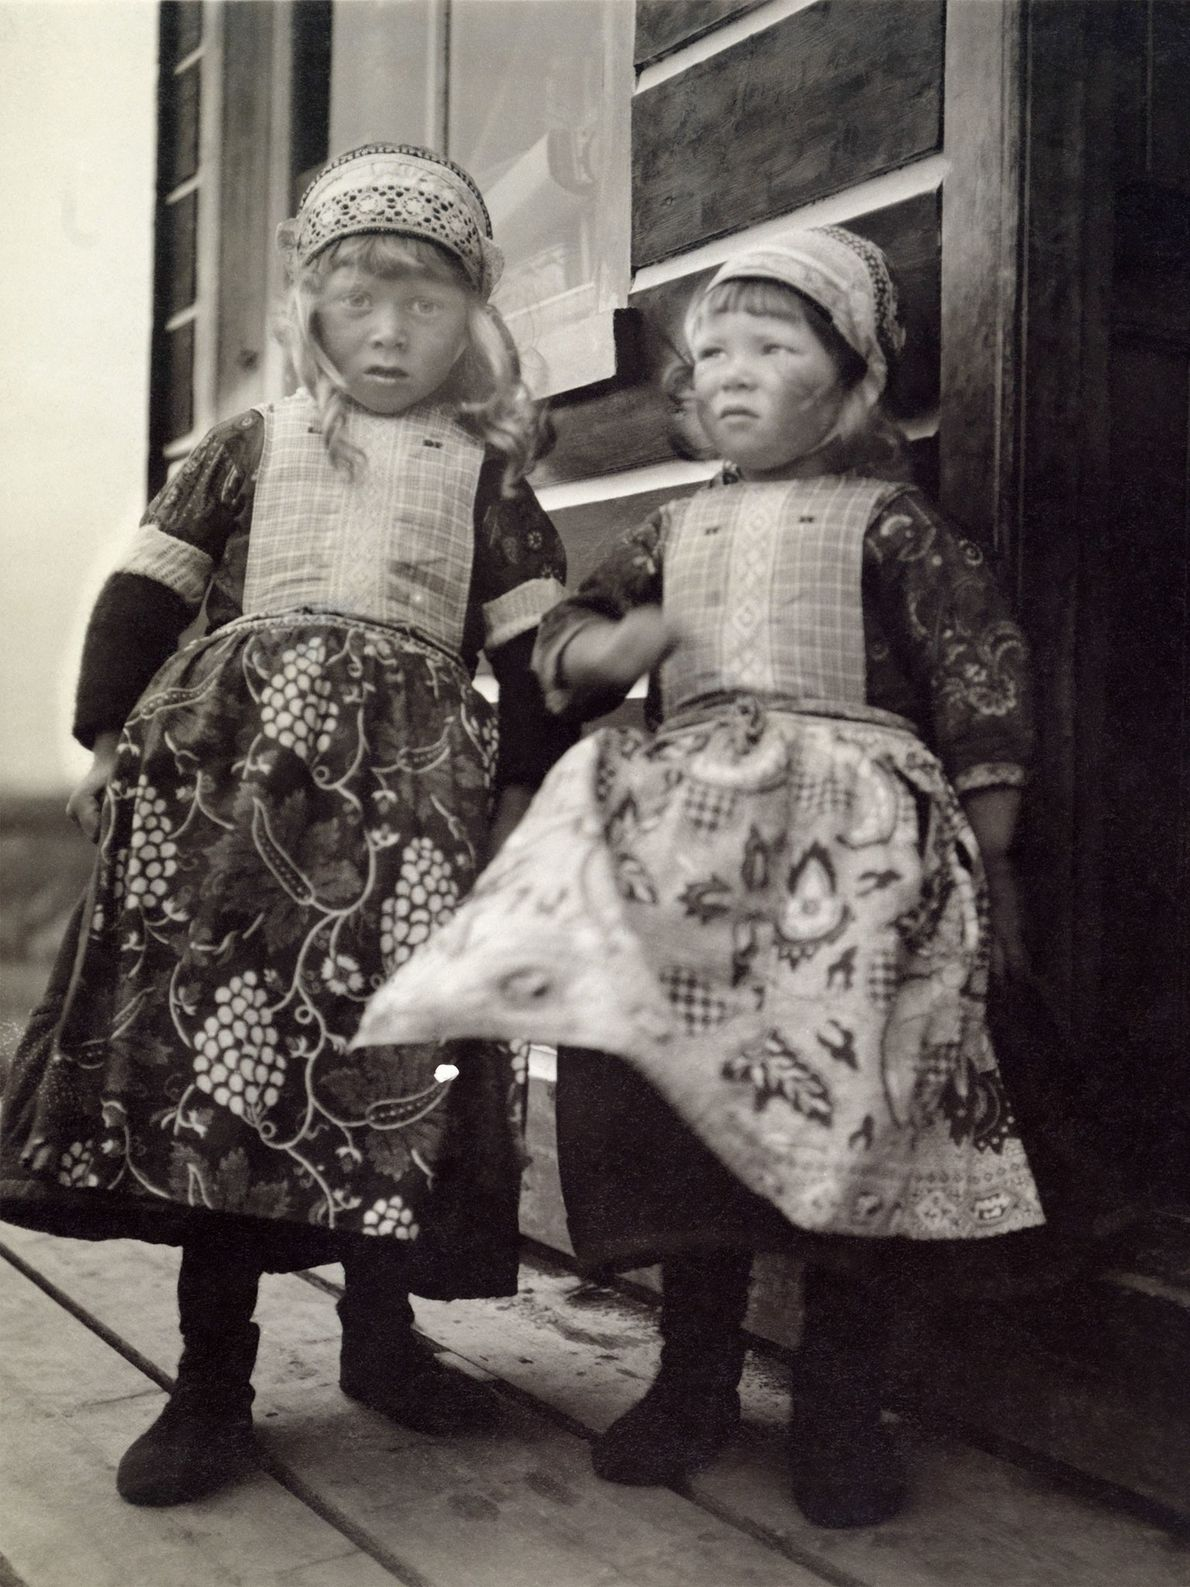 Two young girls in traditional Dutch outfits and caps stand outside in Marken Island, Holland.